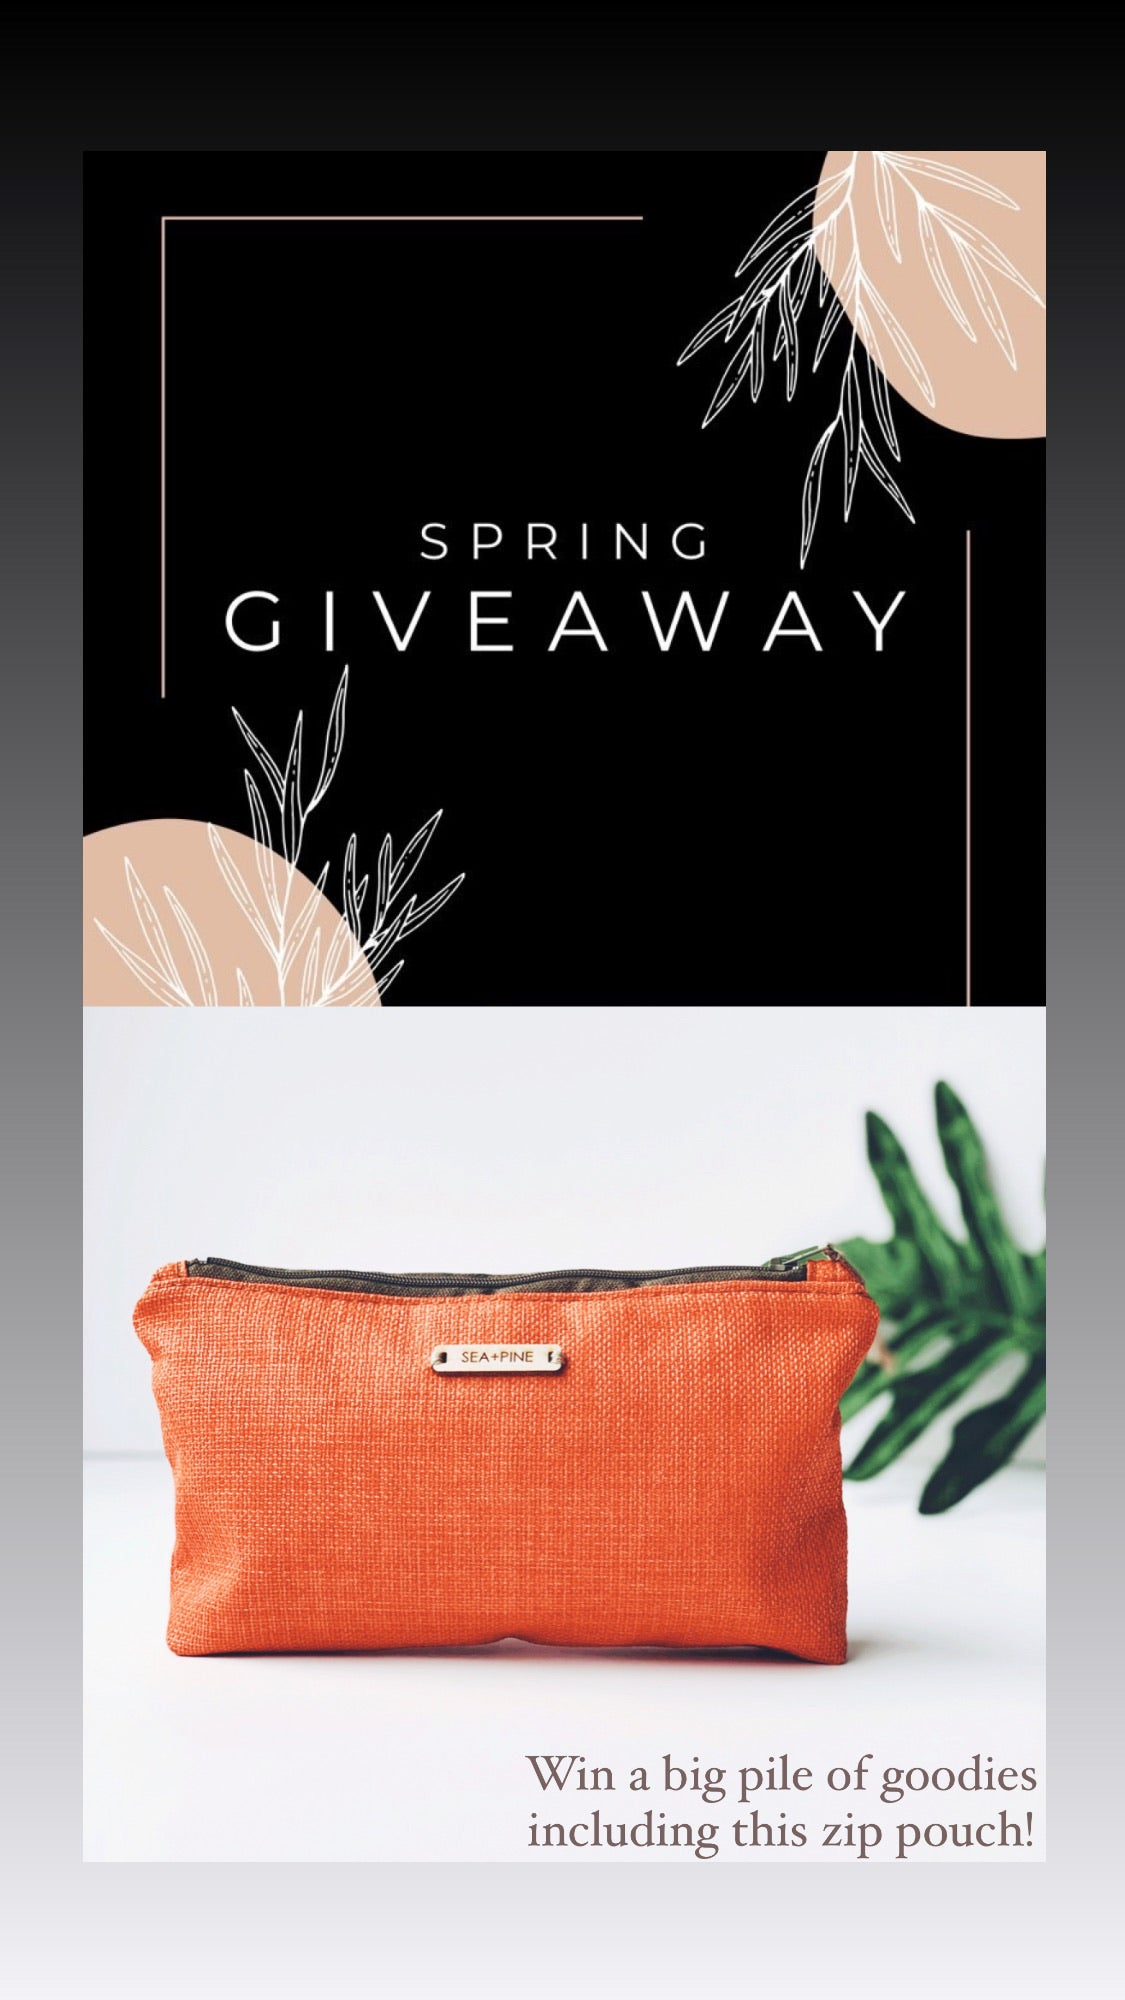 Spring Giveaway coral mini zip pouch